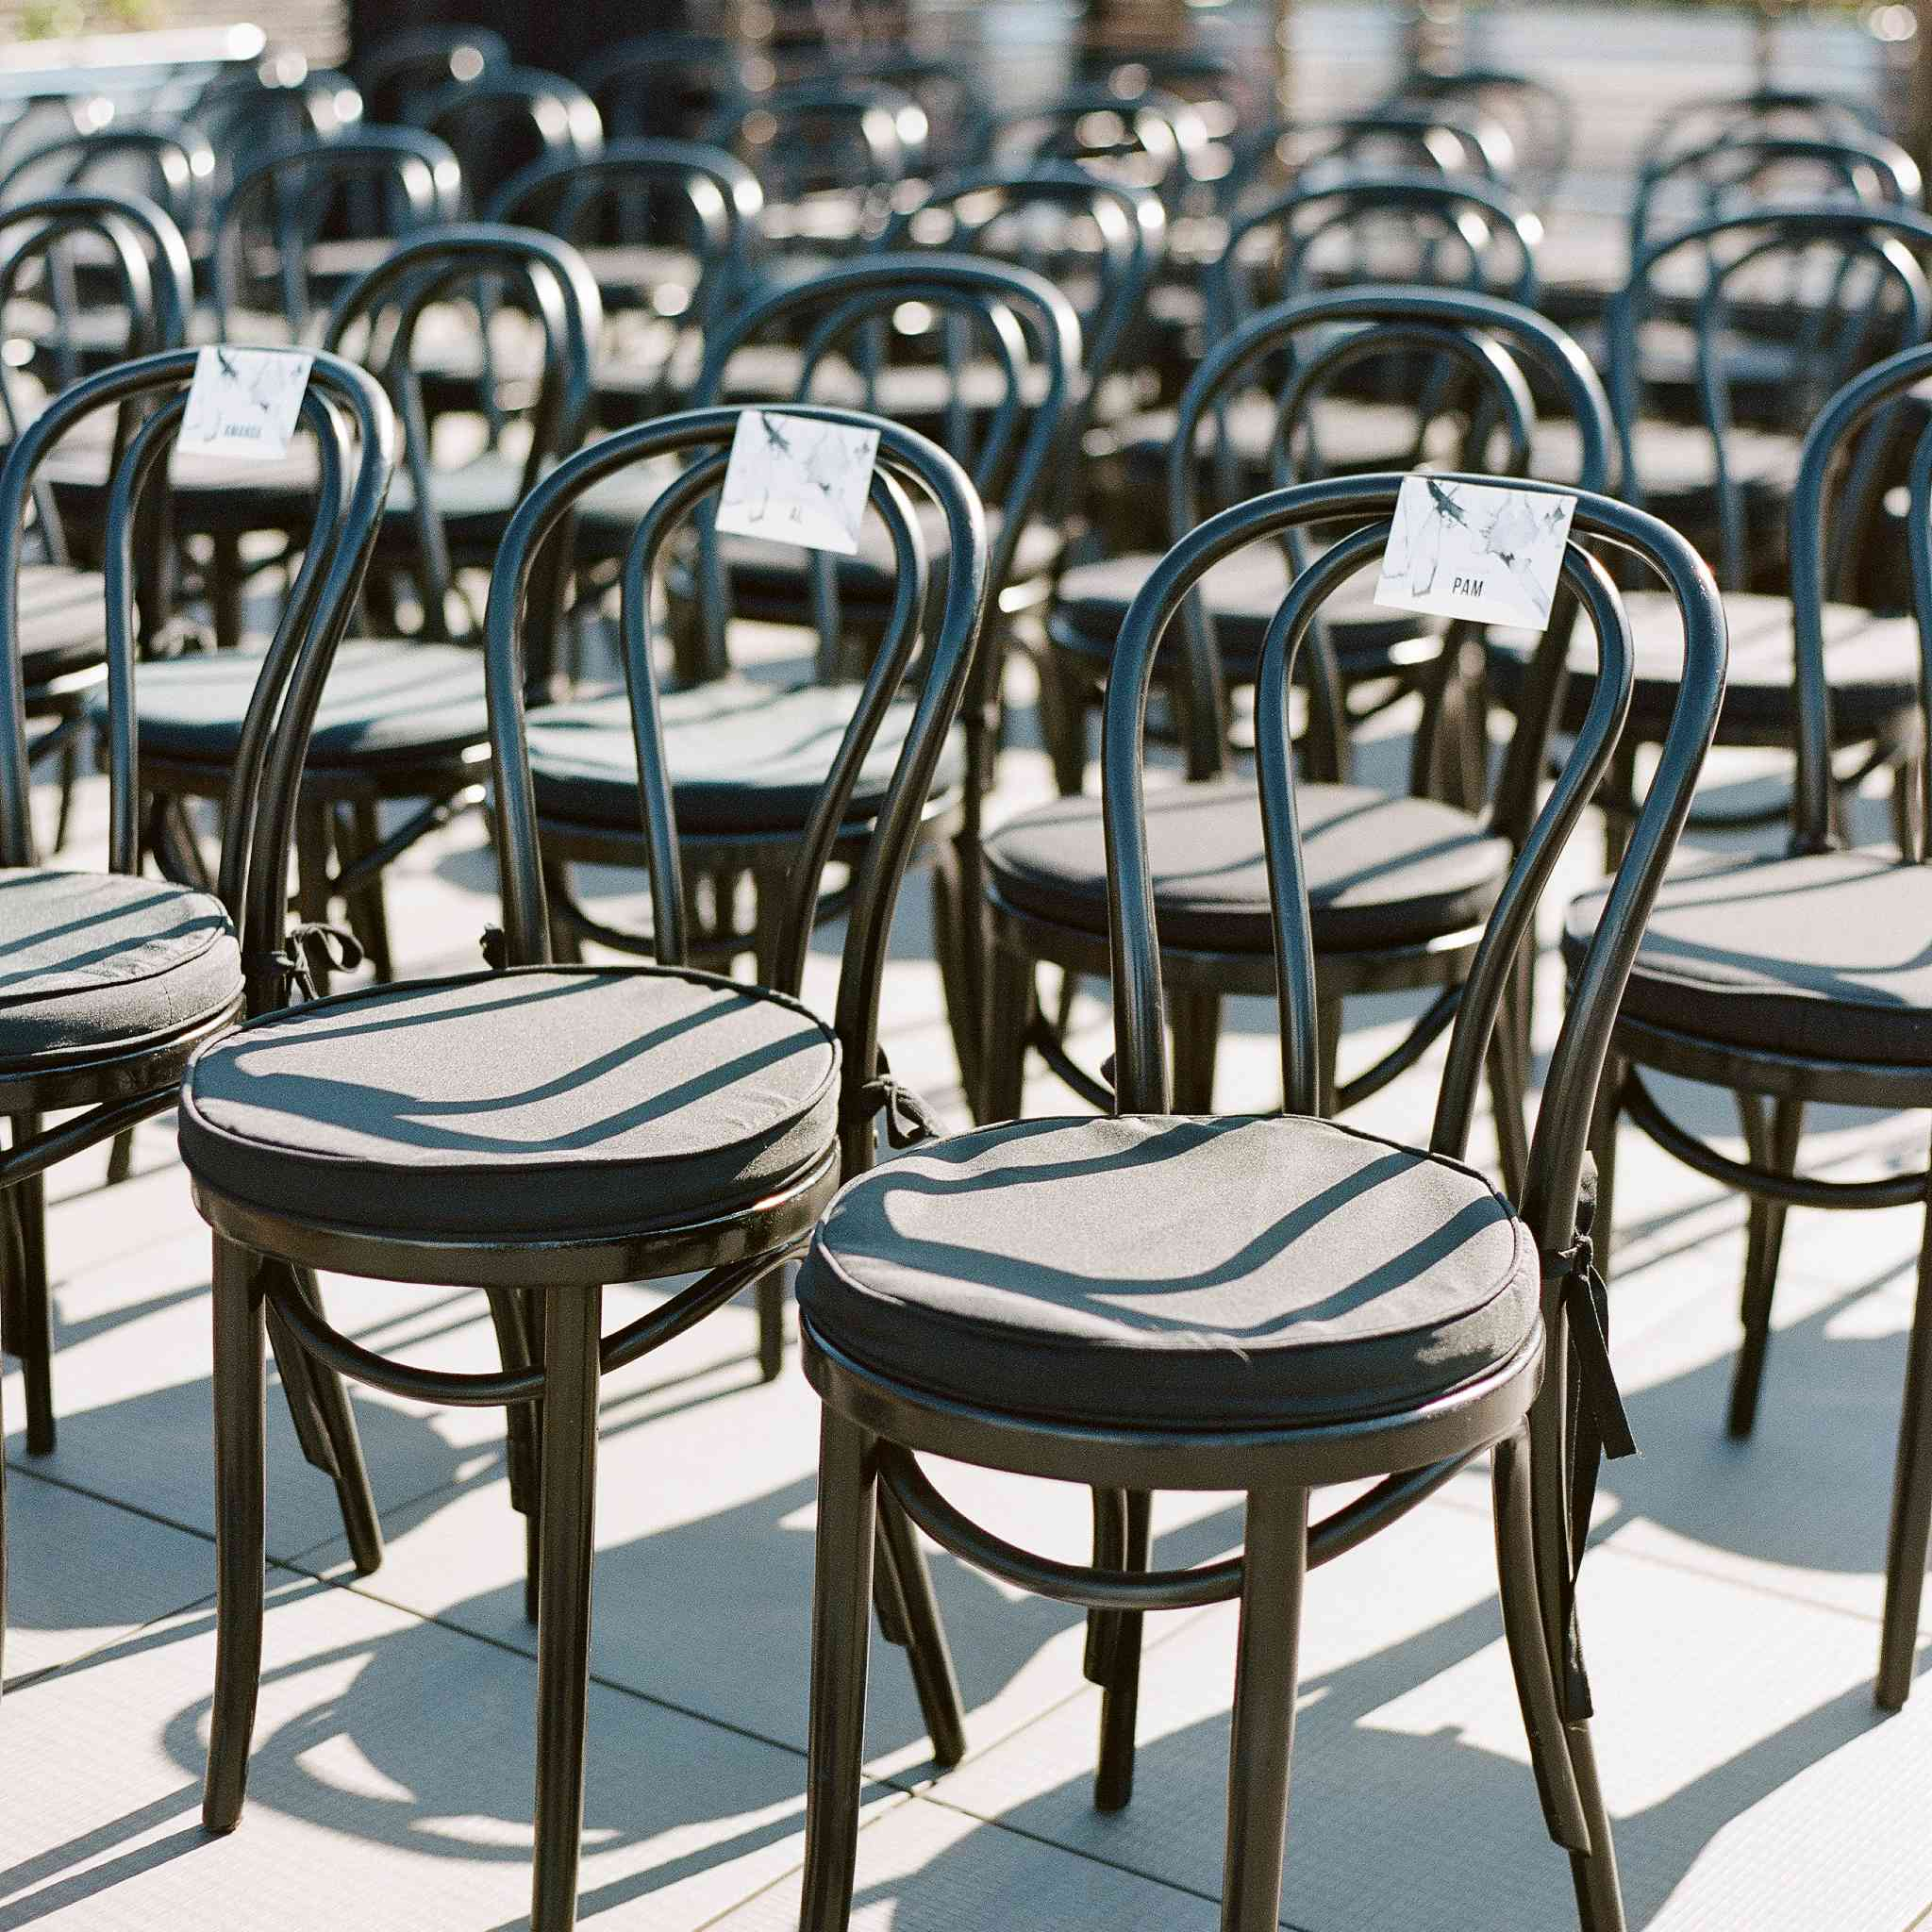 <p>outdoor ceremony seating</p><br><br>